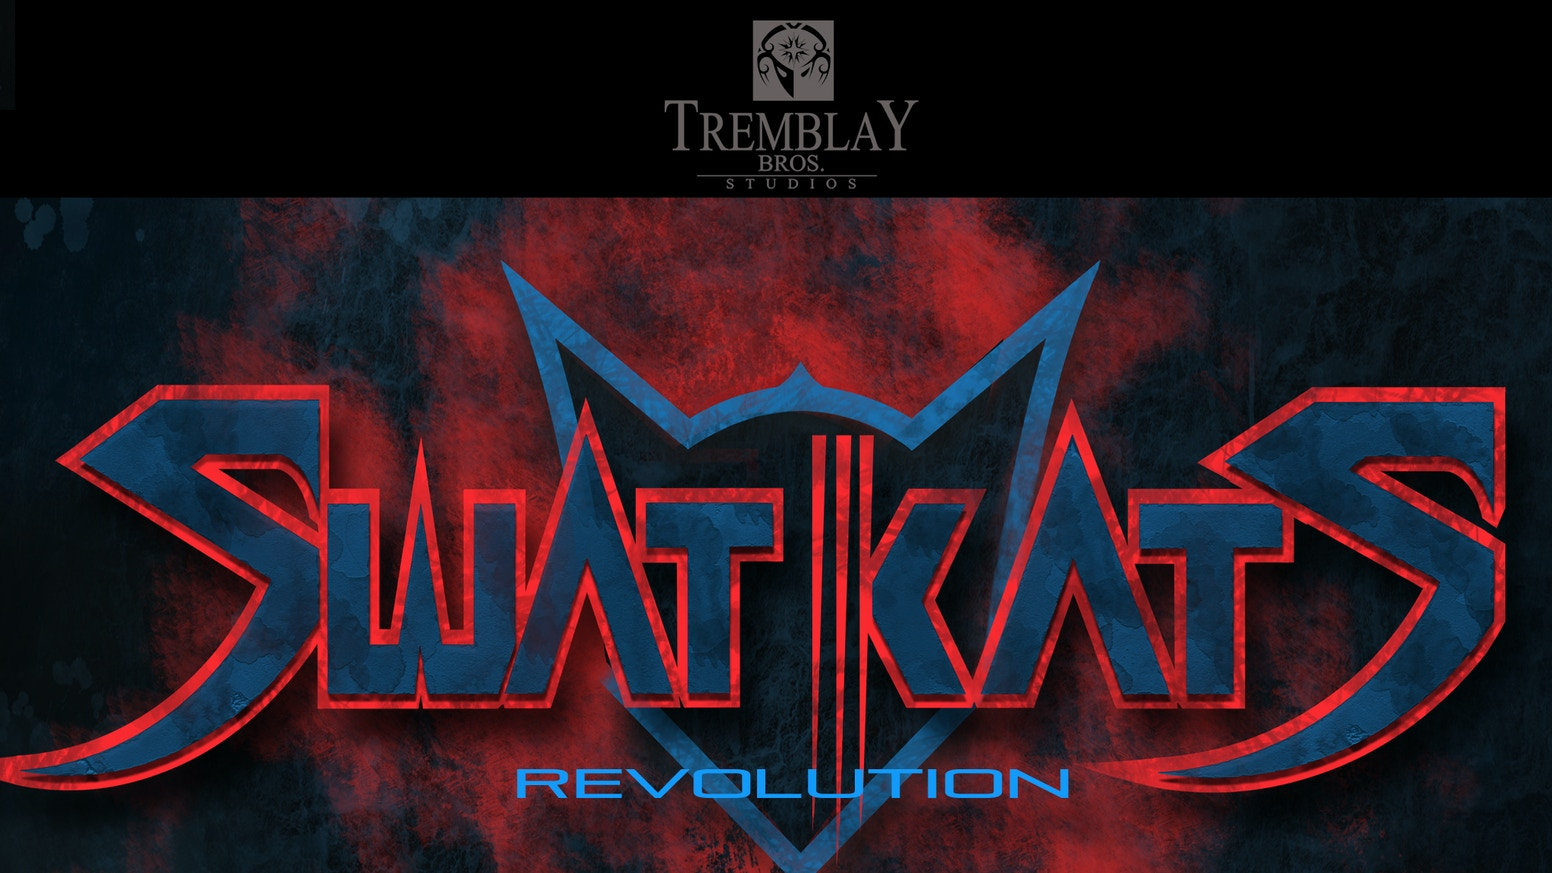 SWAT-KATS REVOLUTION by TREMBLAY BROS STUDIOS — Kickstarter